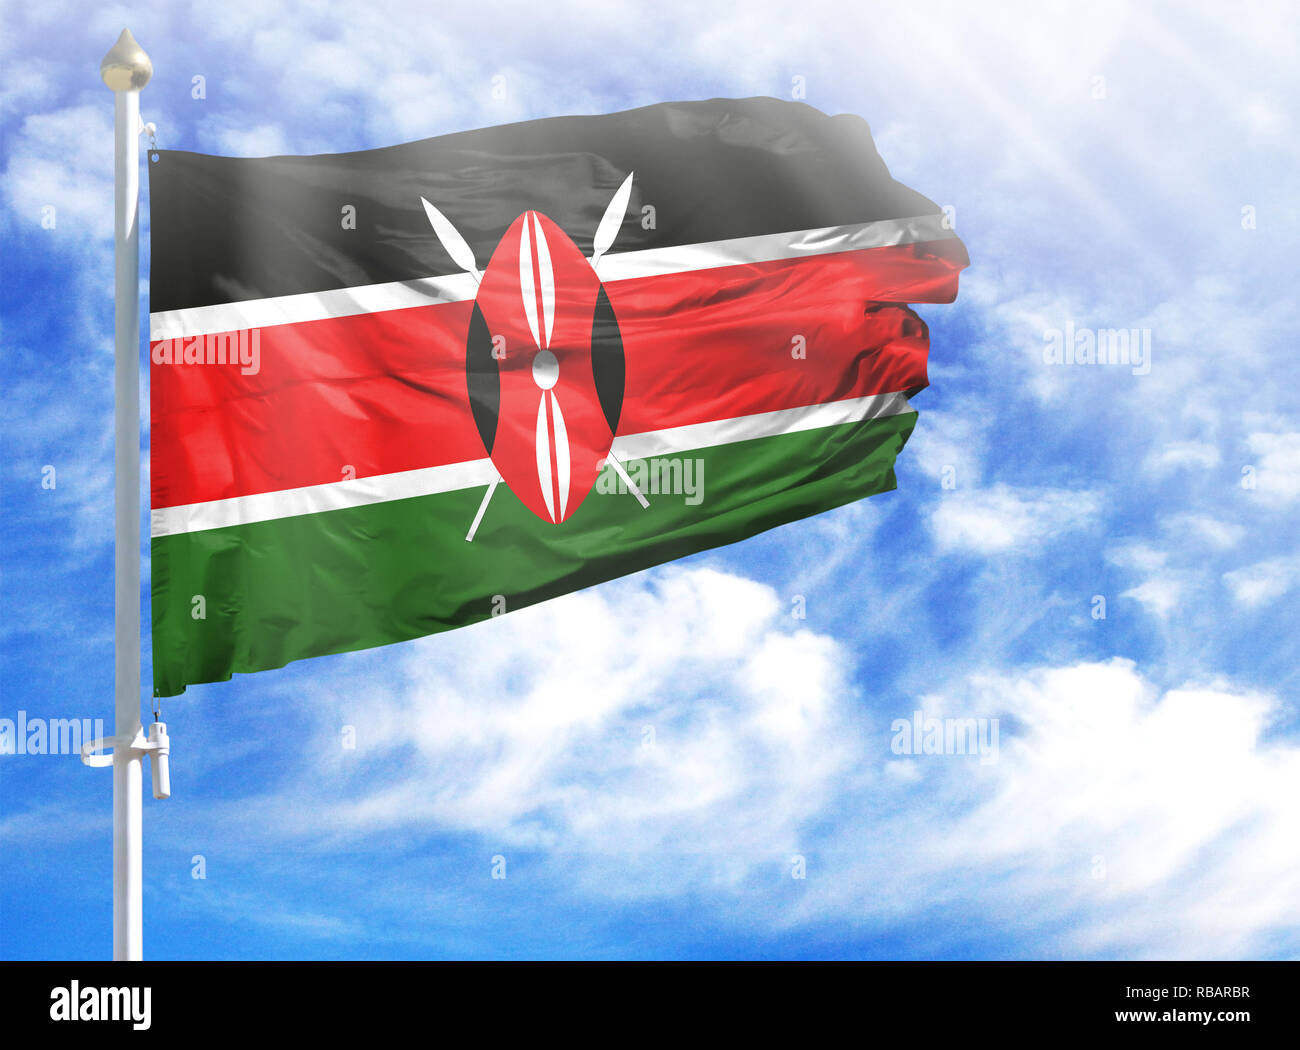 National flag of Kenya on a flagpole in front of blue sky. - Stock Image